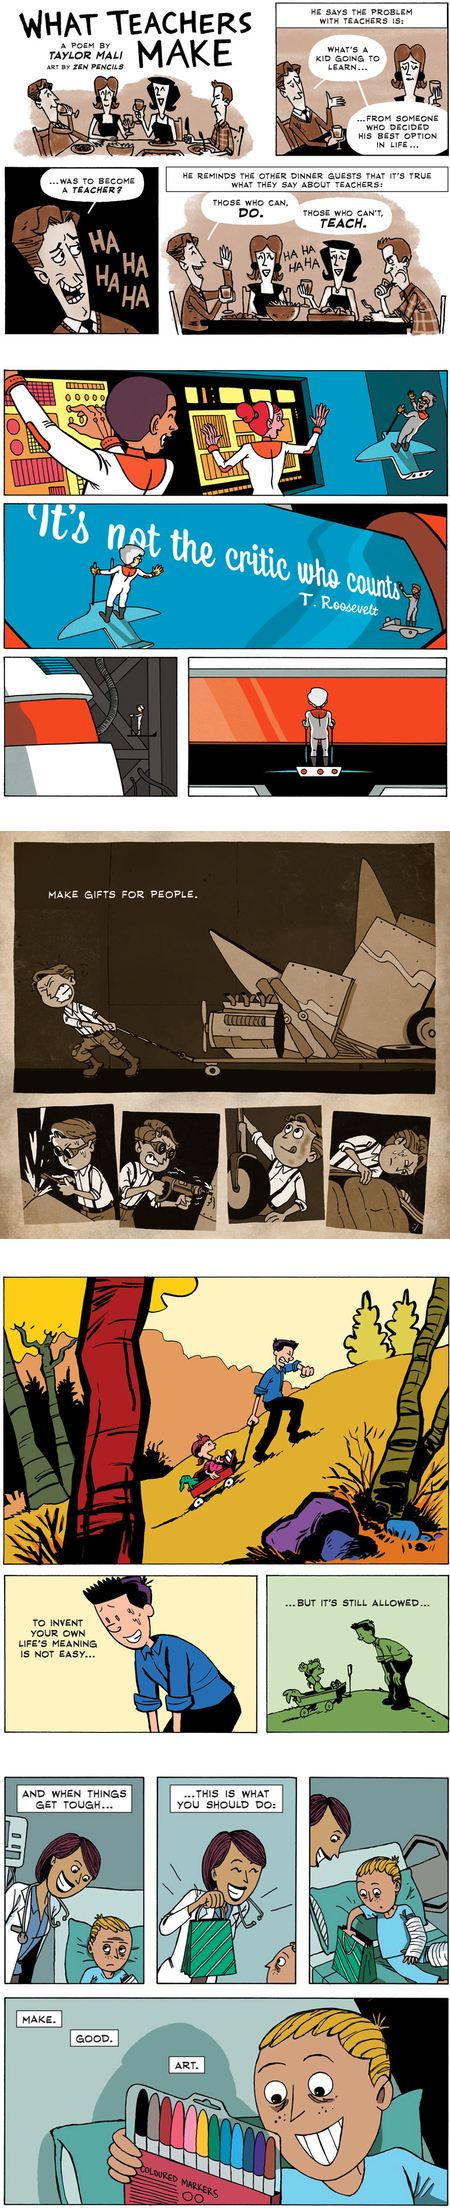 Zen Pencils (Gavin Aung Than)